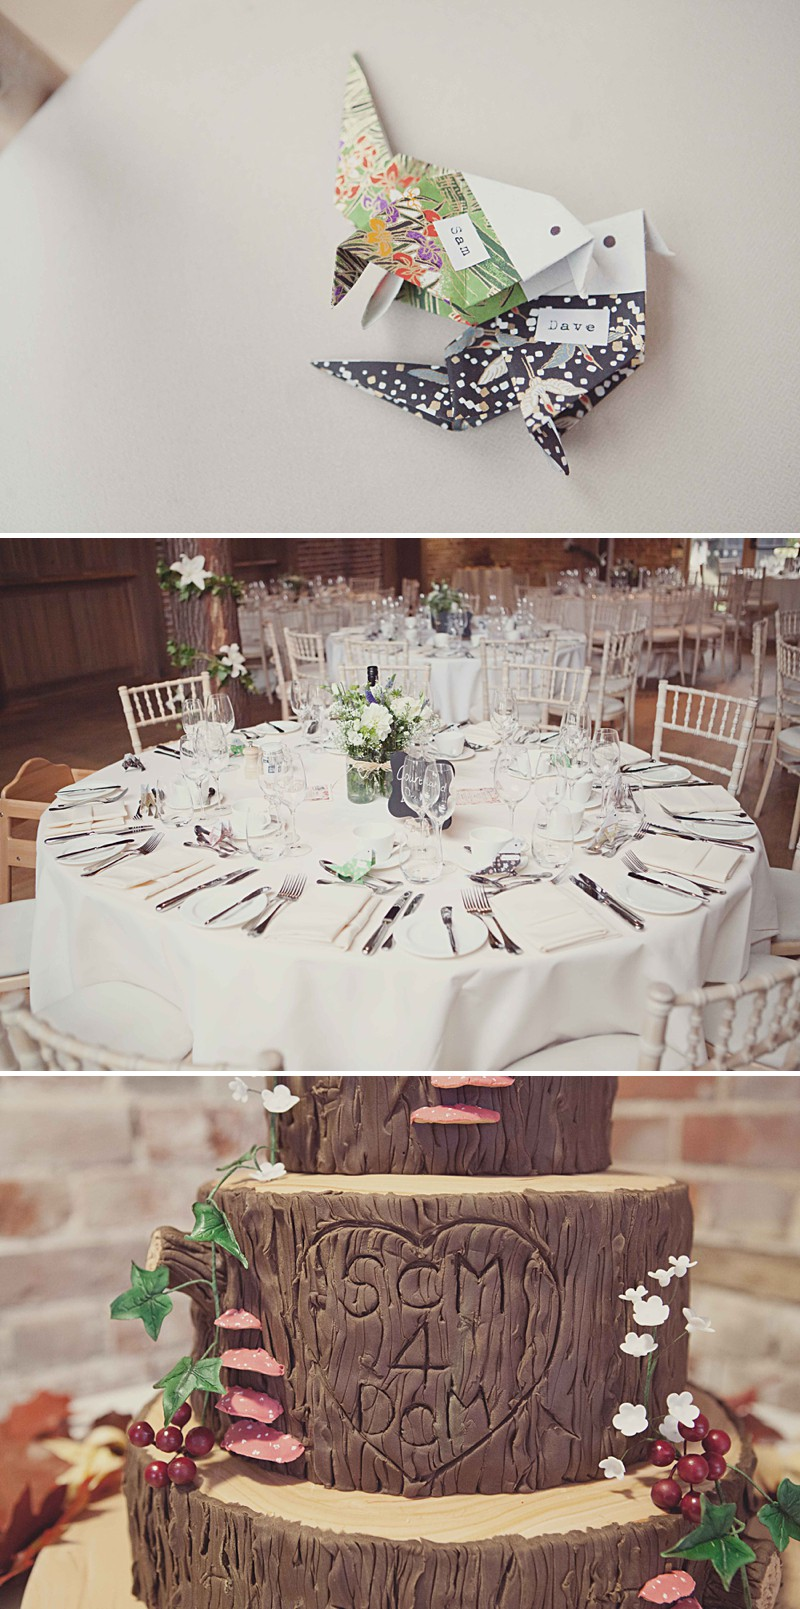 A Rustic Wedding At Gaynes Park With A Jenny Packham 'Eden' Dress And Dusky Blue Bridesmaids Dresses With Foliage Bouquets By Philippa James Photography._0008